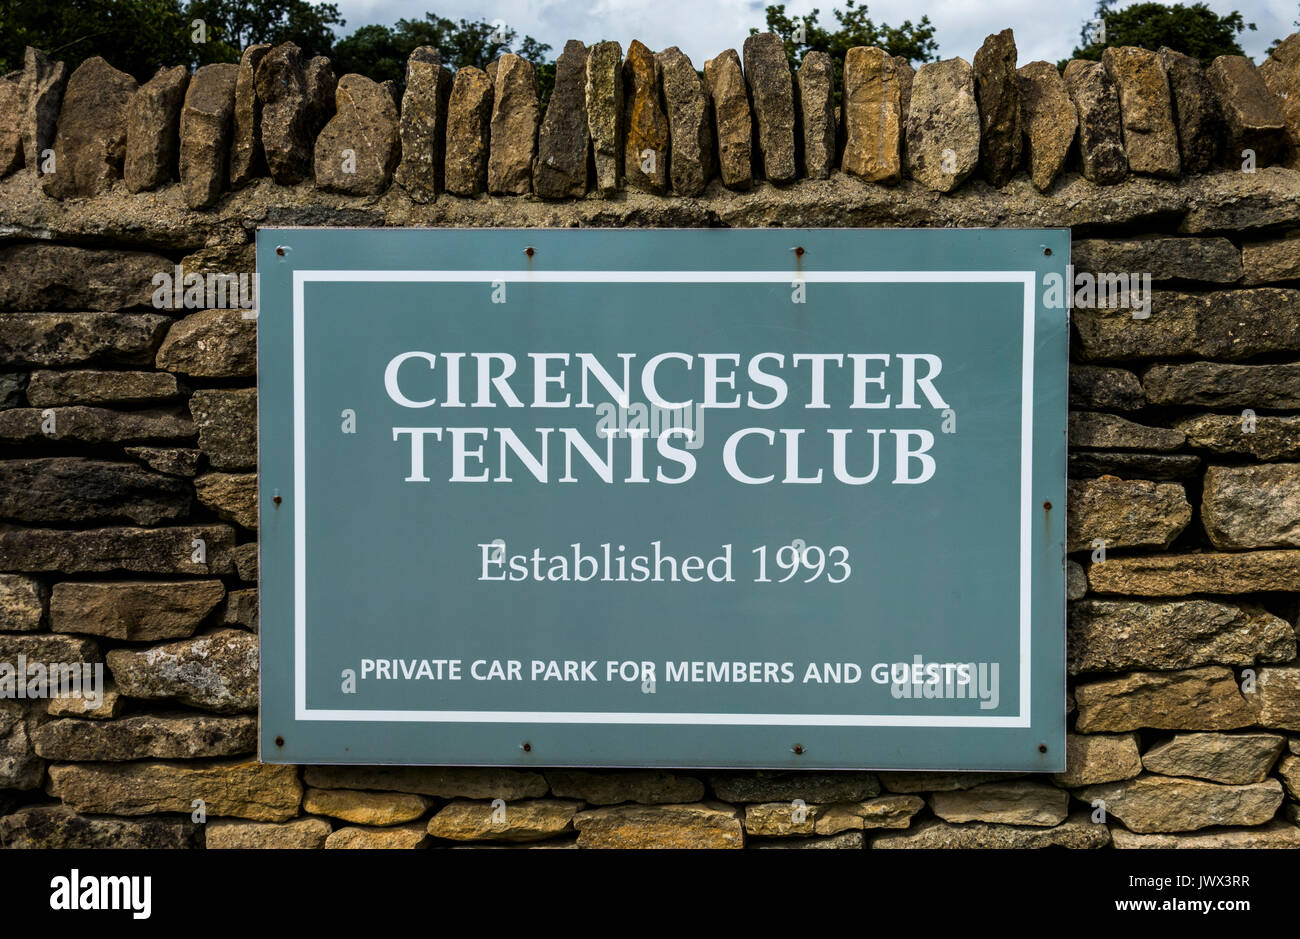 Cirencester Tennis Club sign attached to a stone wall on the Bathurst Estate. Cirencester, Gloucestershire, England, UK. - Stock Image